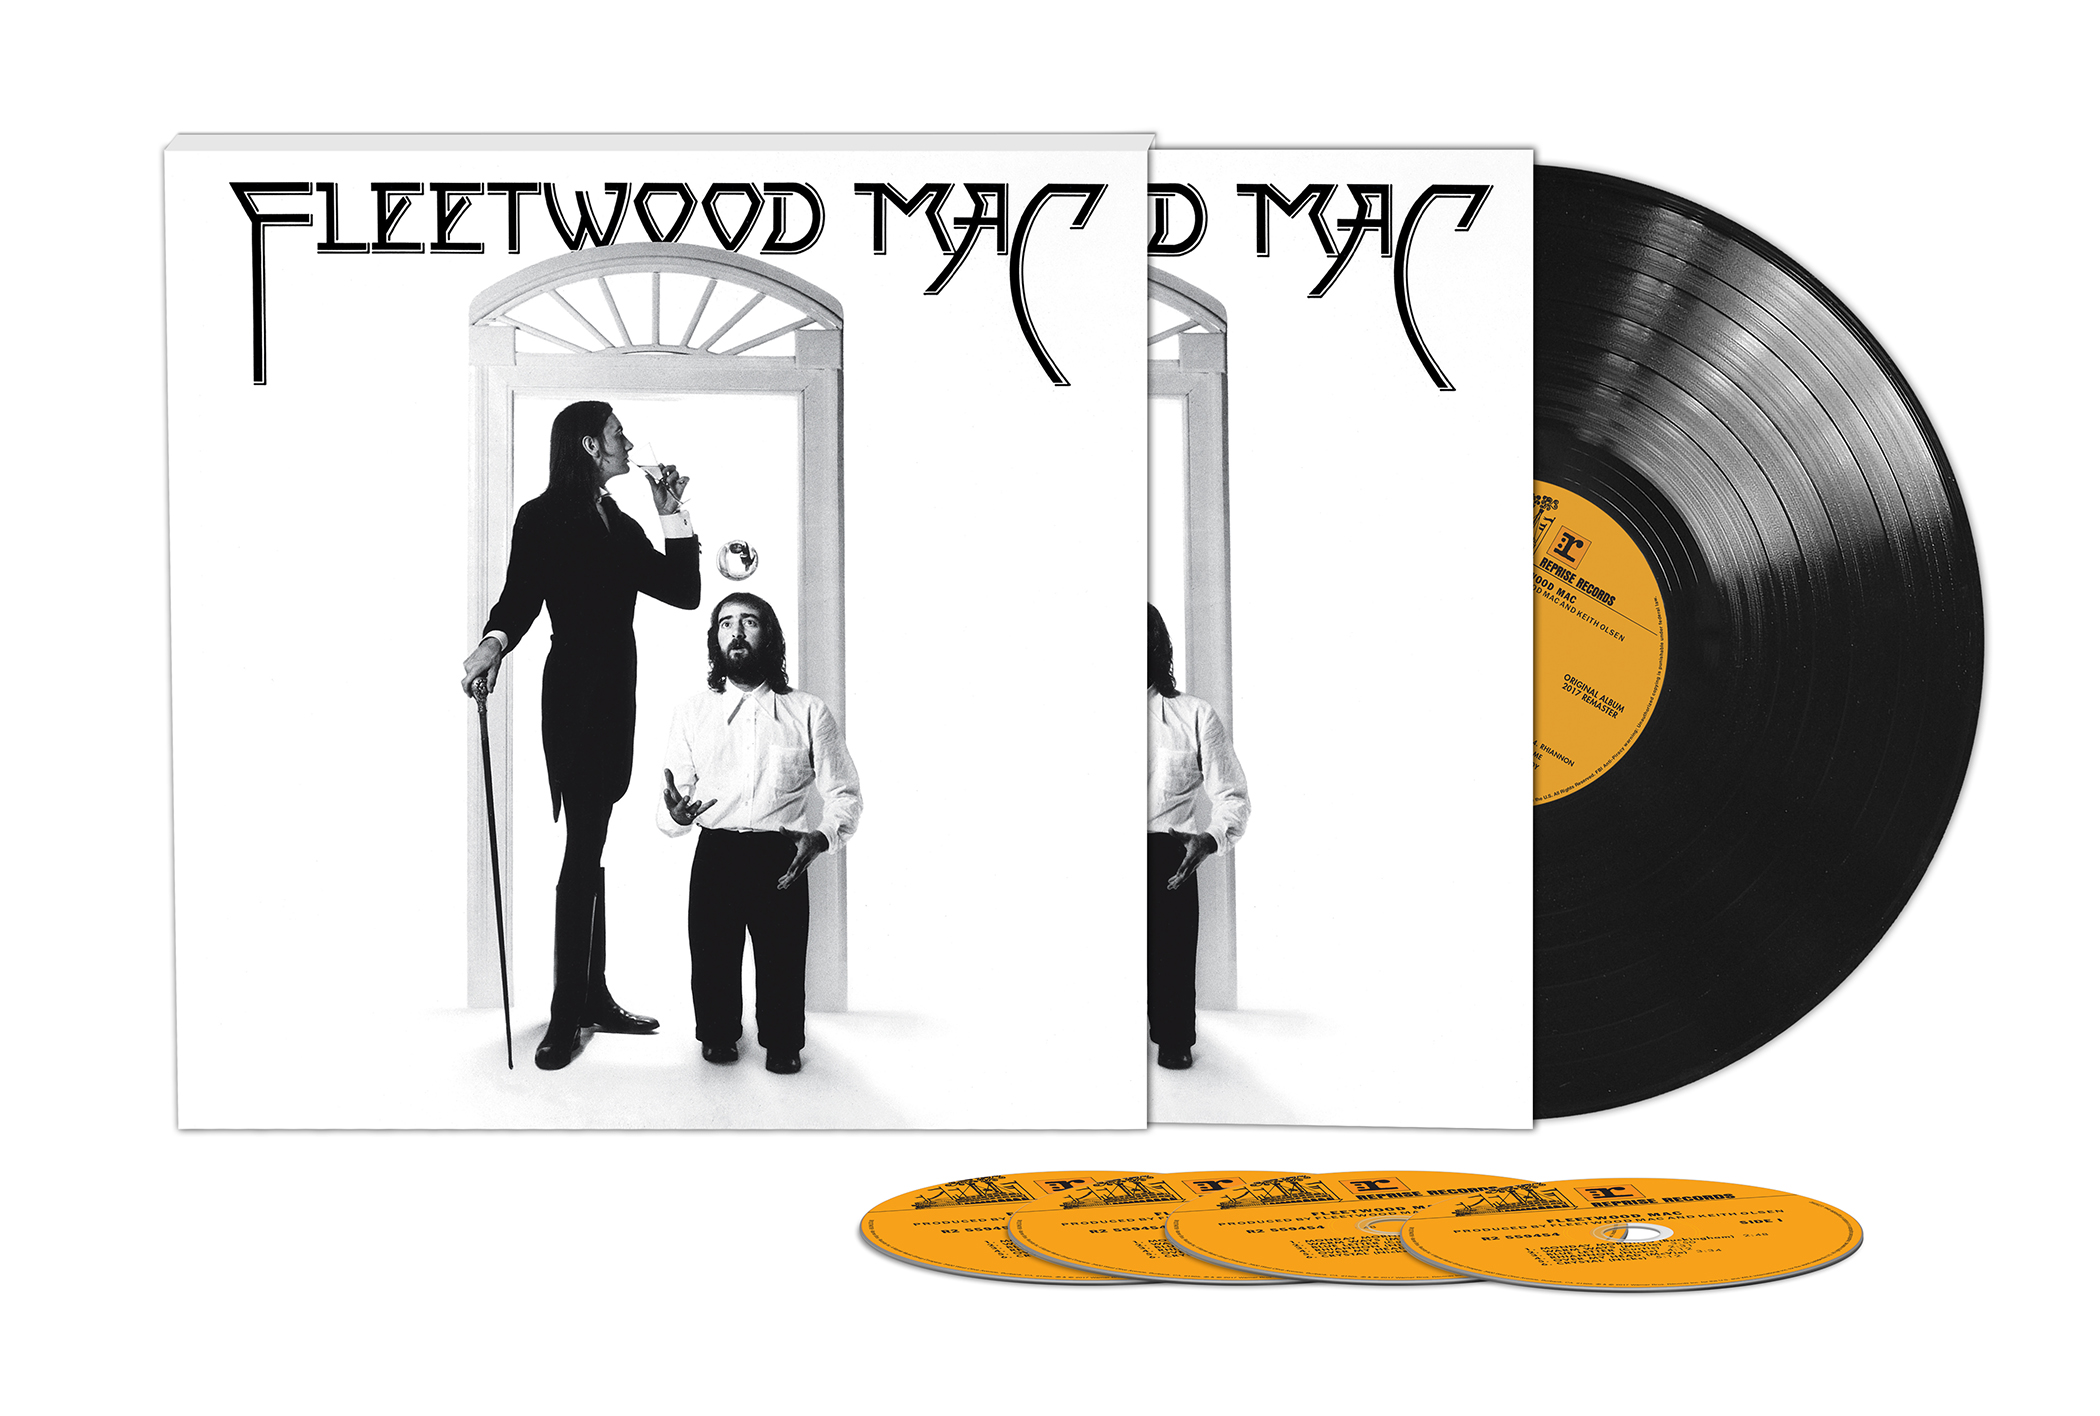 fleetwood mac 39 s 1975 album to get expansive reissue on january 19. Black Bedroom Furniture Sets. Home Design Ideas